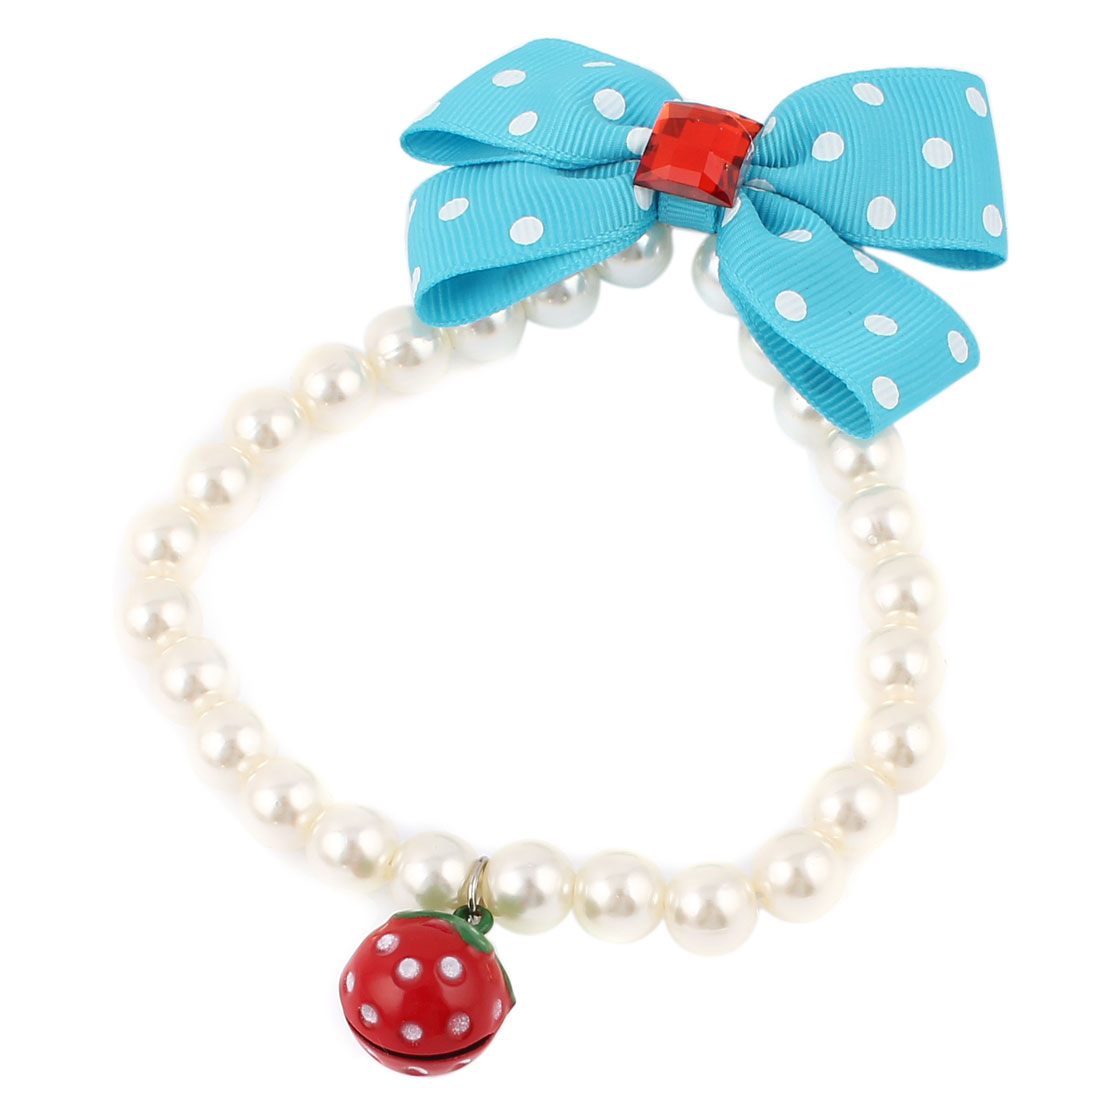 Strawberry Bell Pendant Bowknot Accent Pet Dog Plastic Beads Imitation Pearls Collar Necklace White Blue S